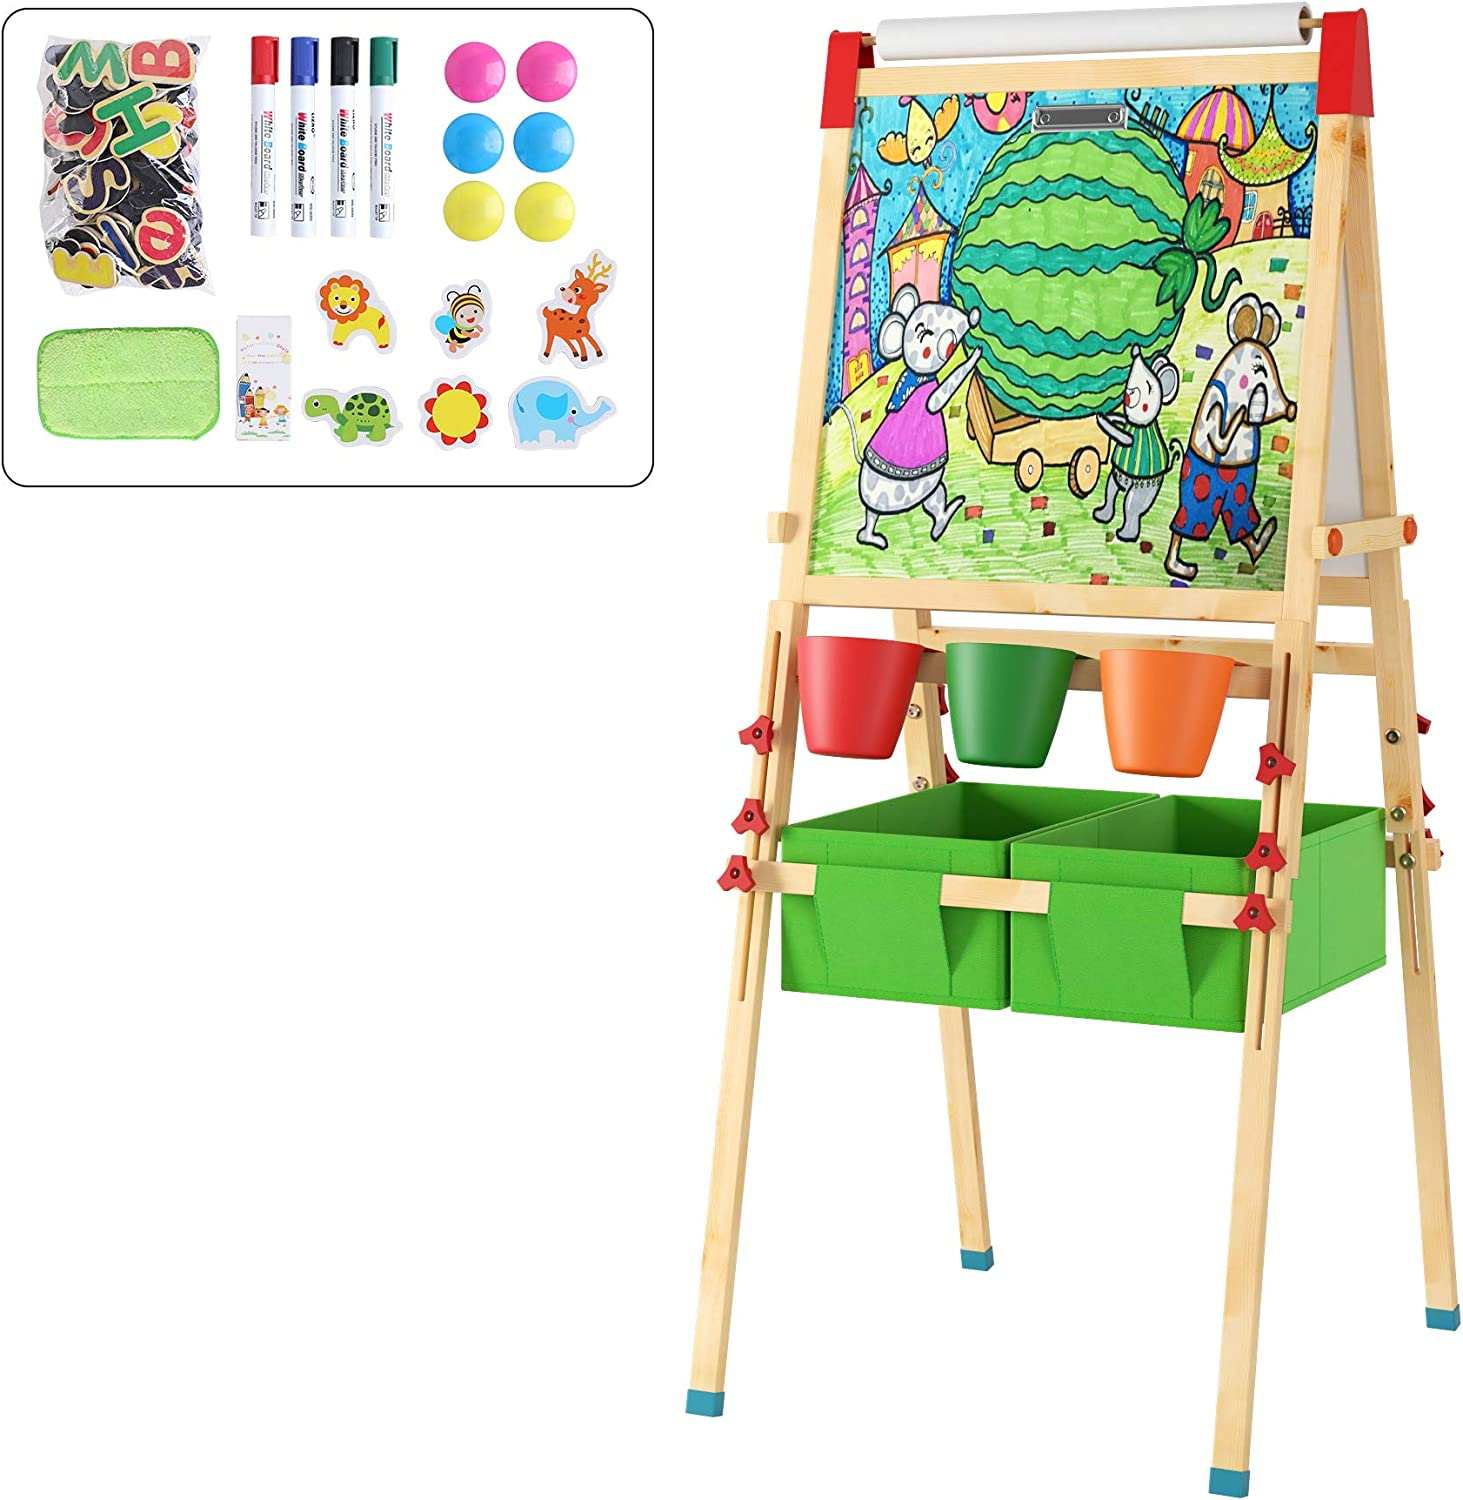 Homfa Wooden Kids Easel with Paper Roll Double Side Multiple-use Magnetic Whiteboard/Chalkboard Art Standing with Rich Accessories for Toddlers Children Painting and Drawing, Height Adjustable